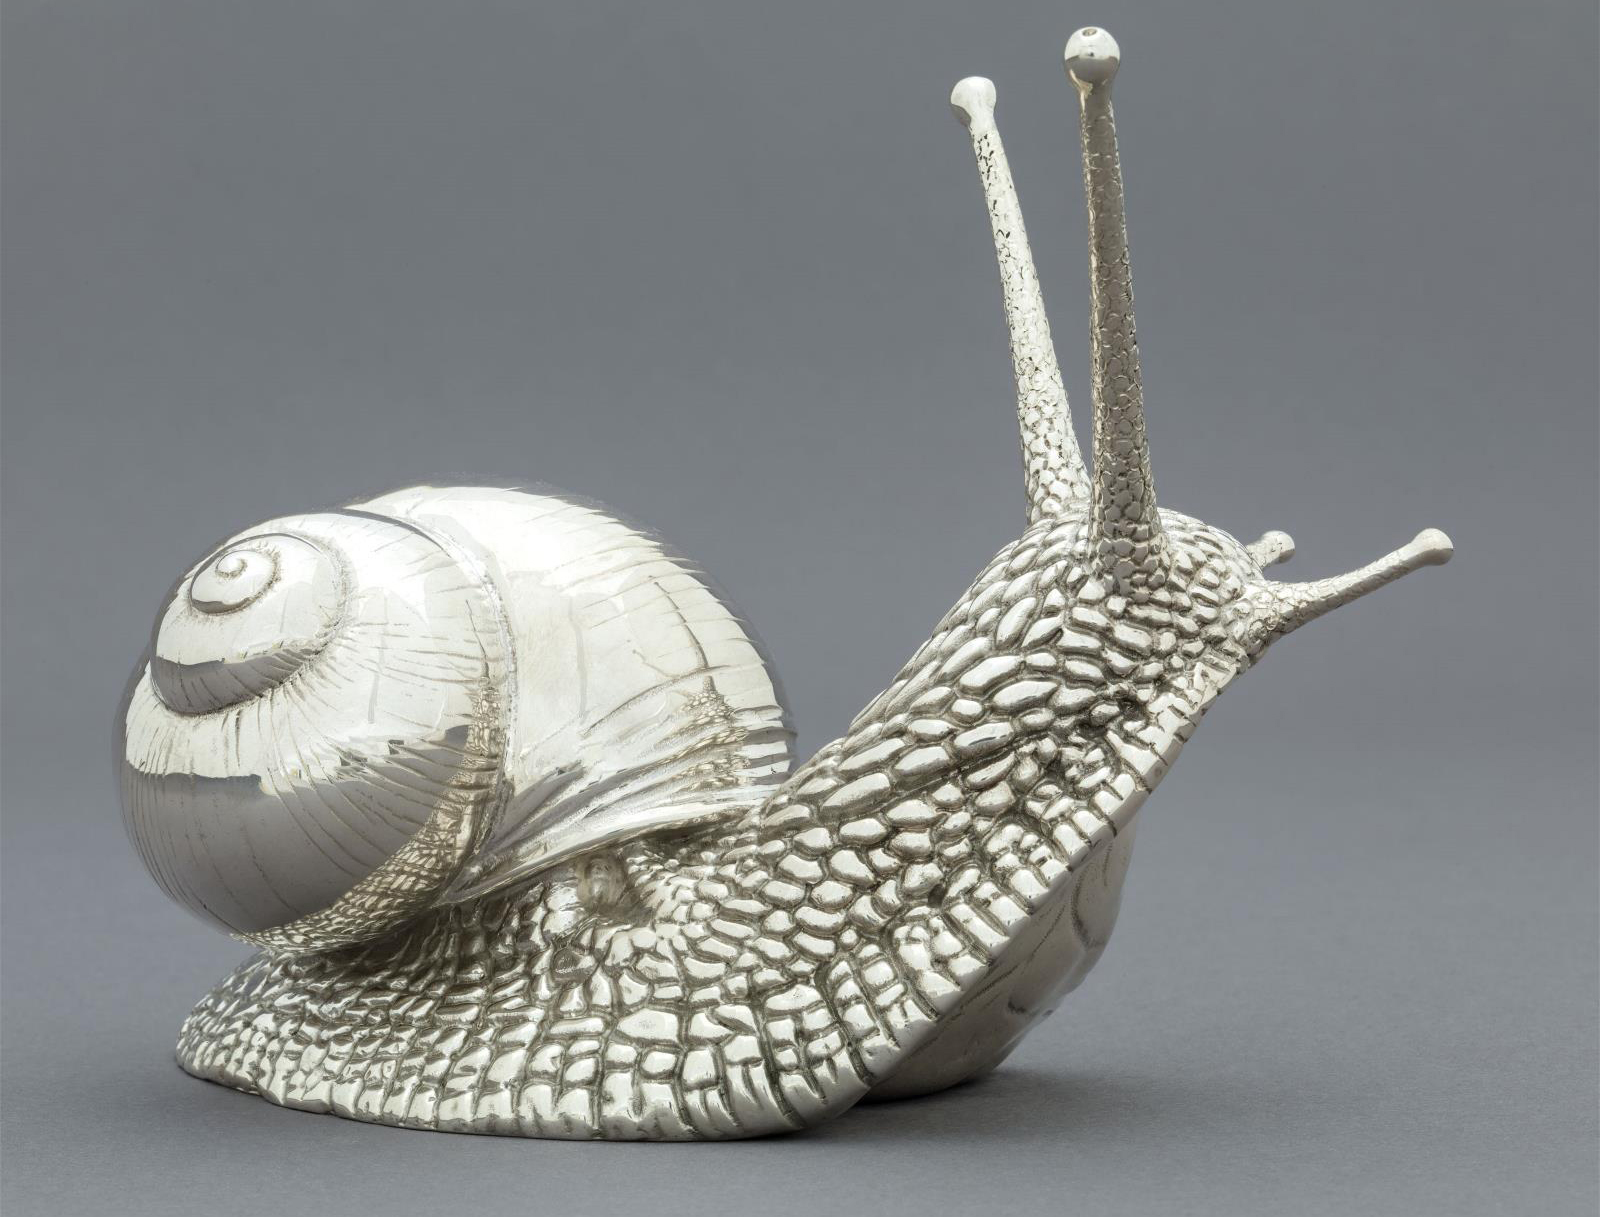 Garden Snail in silver, by sculptor Nick Bibby. It won't be munching your hostas